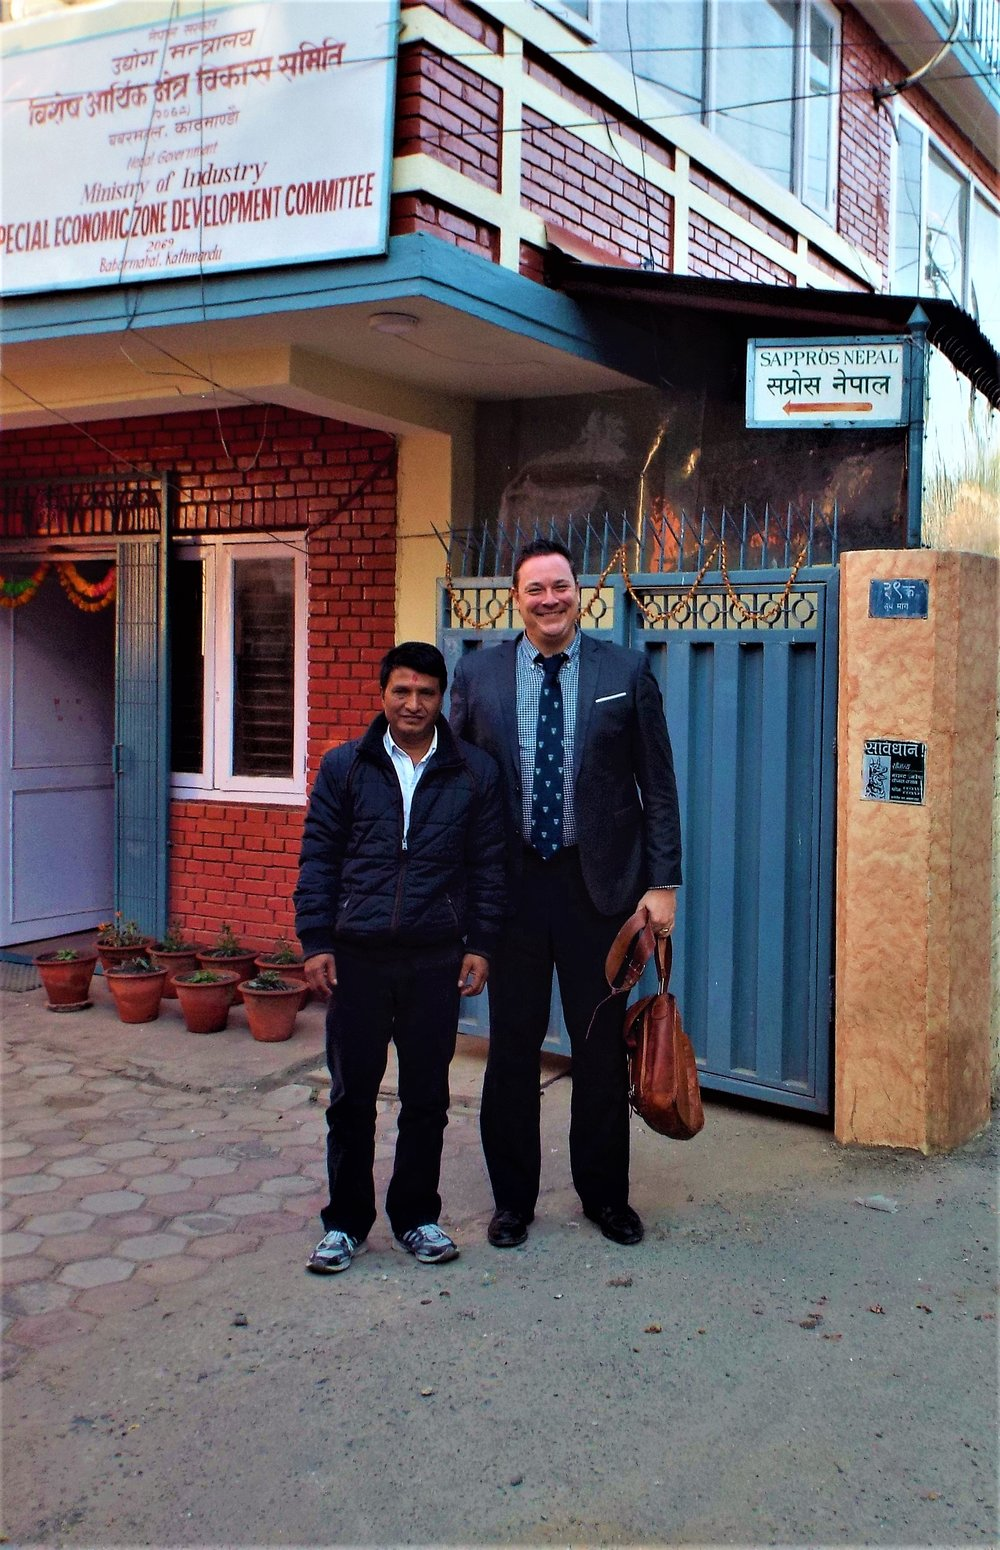 Locus Founder & CEO Jean-Paul Gauthier with Nepal's SEZ Authority Deputy Managing Director